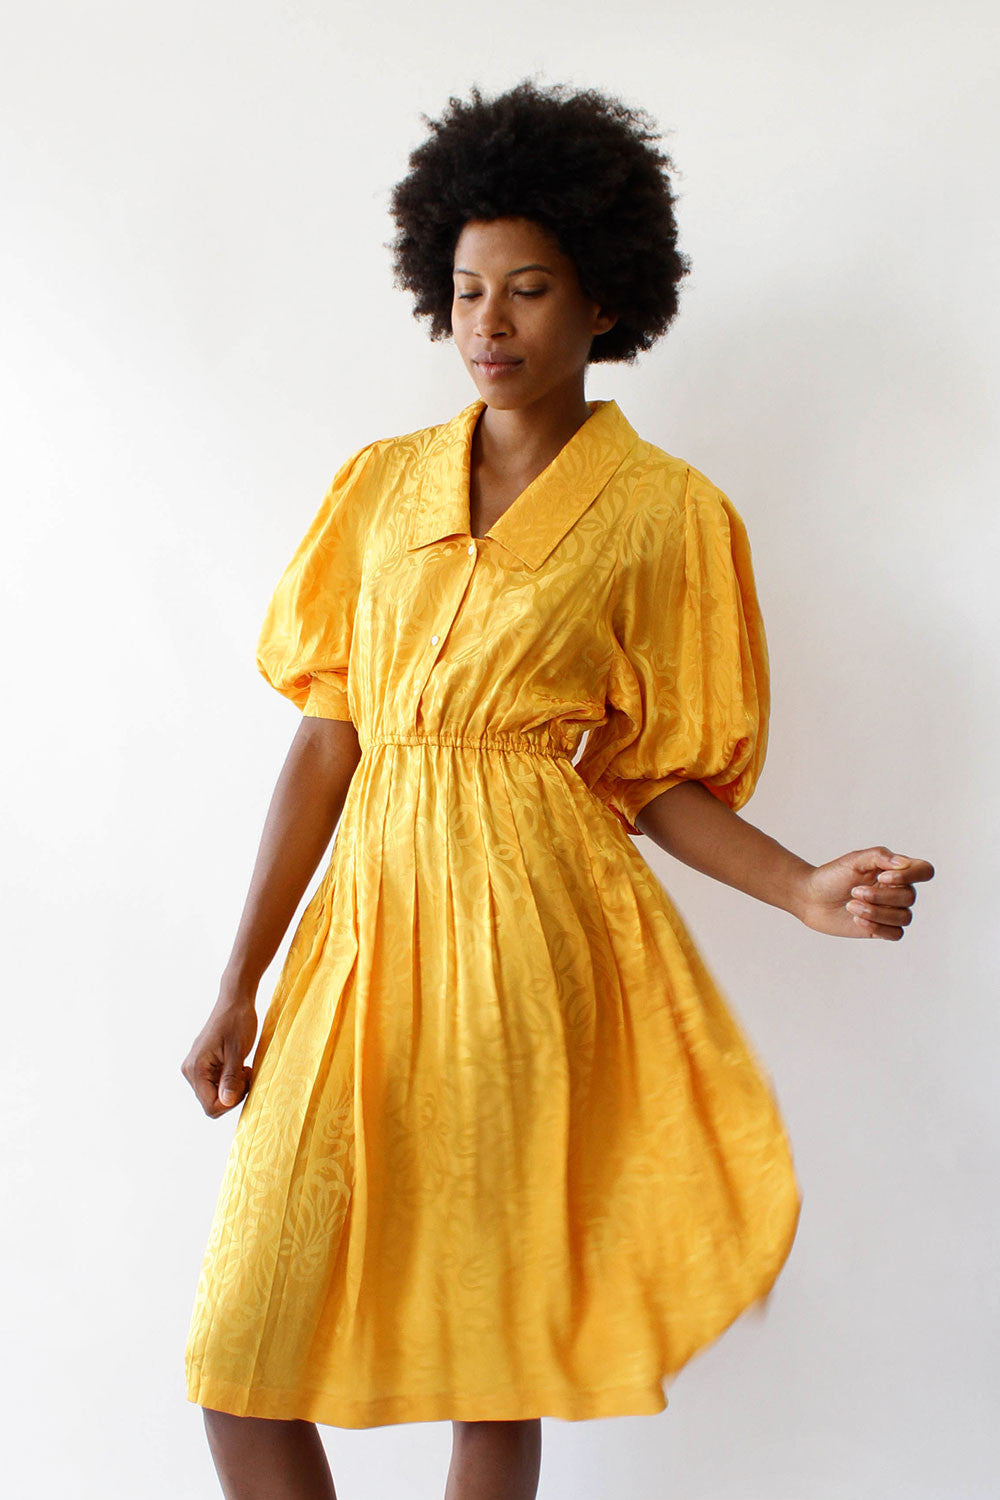 Silk Marigold Balloon Dress S